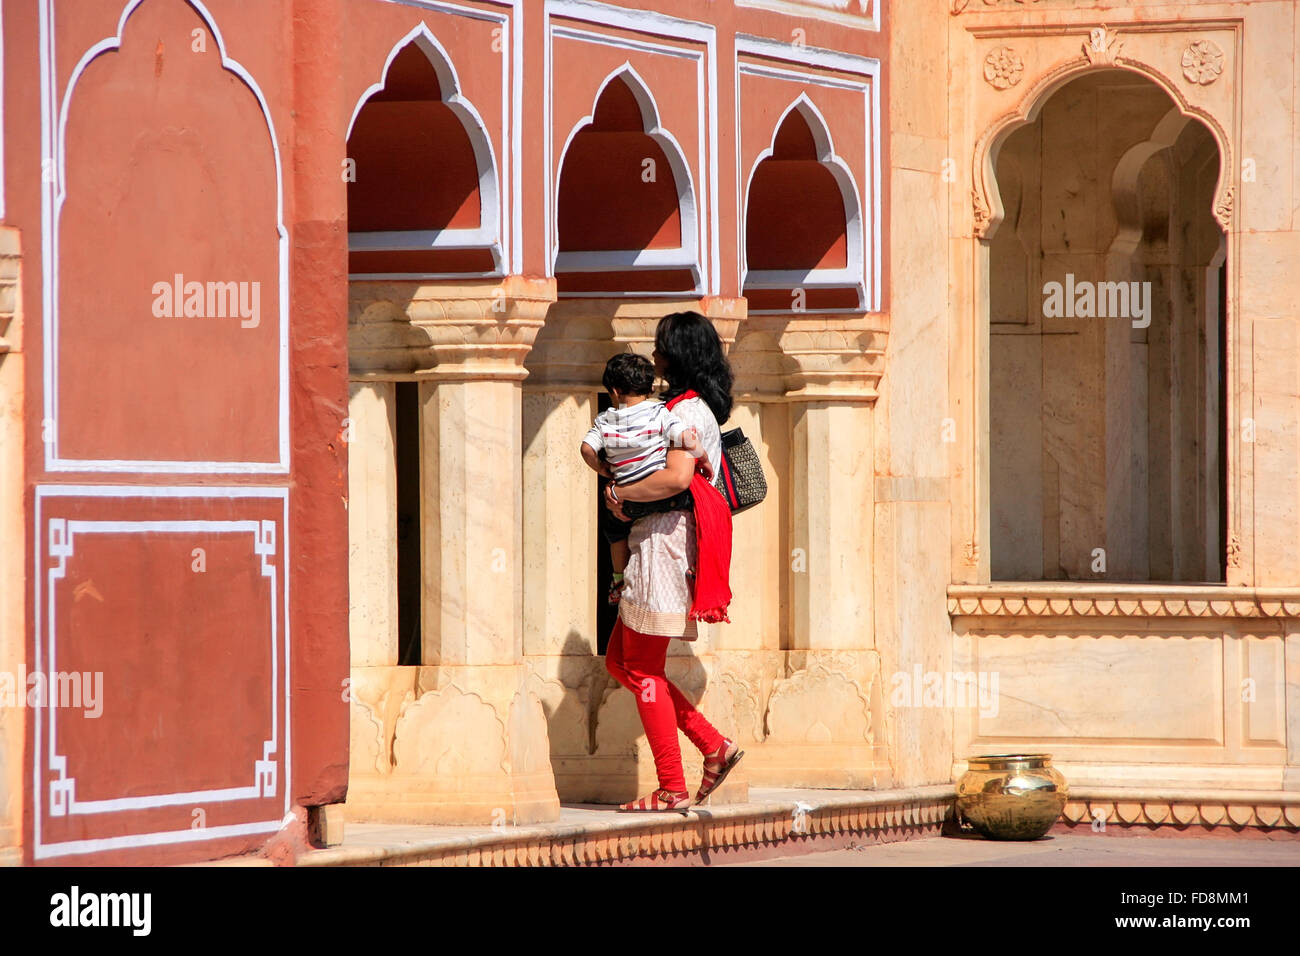 Woman with a child walking at Chandra Mahal in Jaipur City Palace, Rajasthan, India. Palace was the seat of the - Stock Image